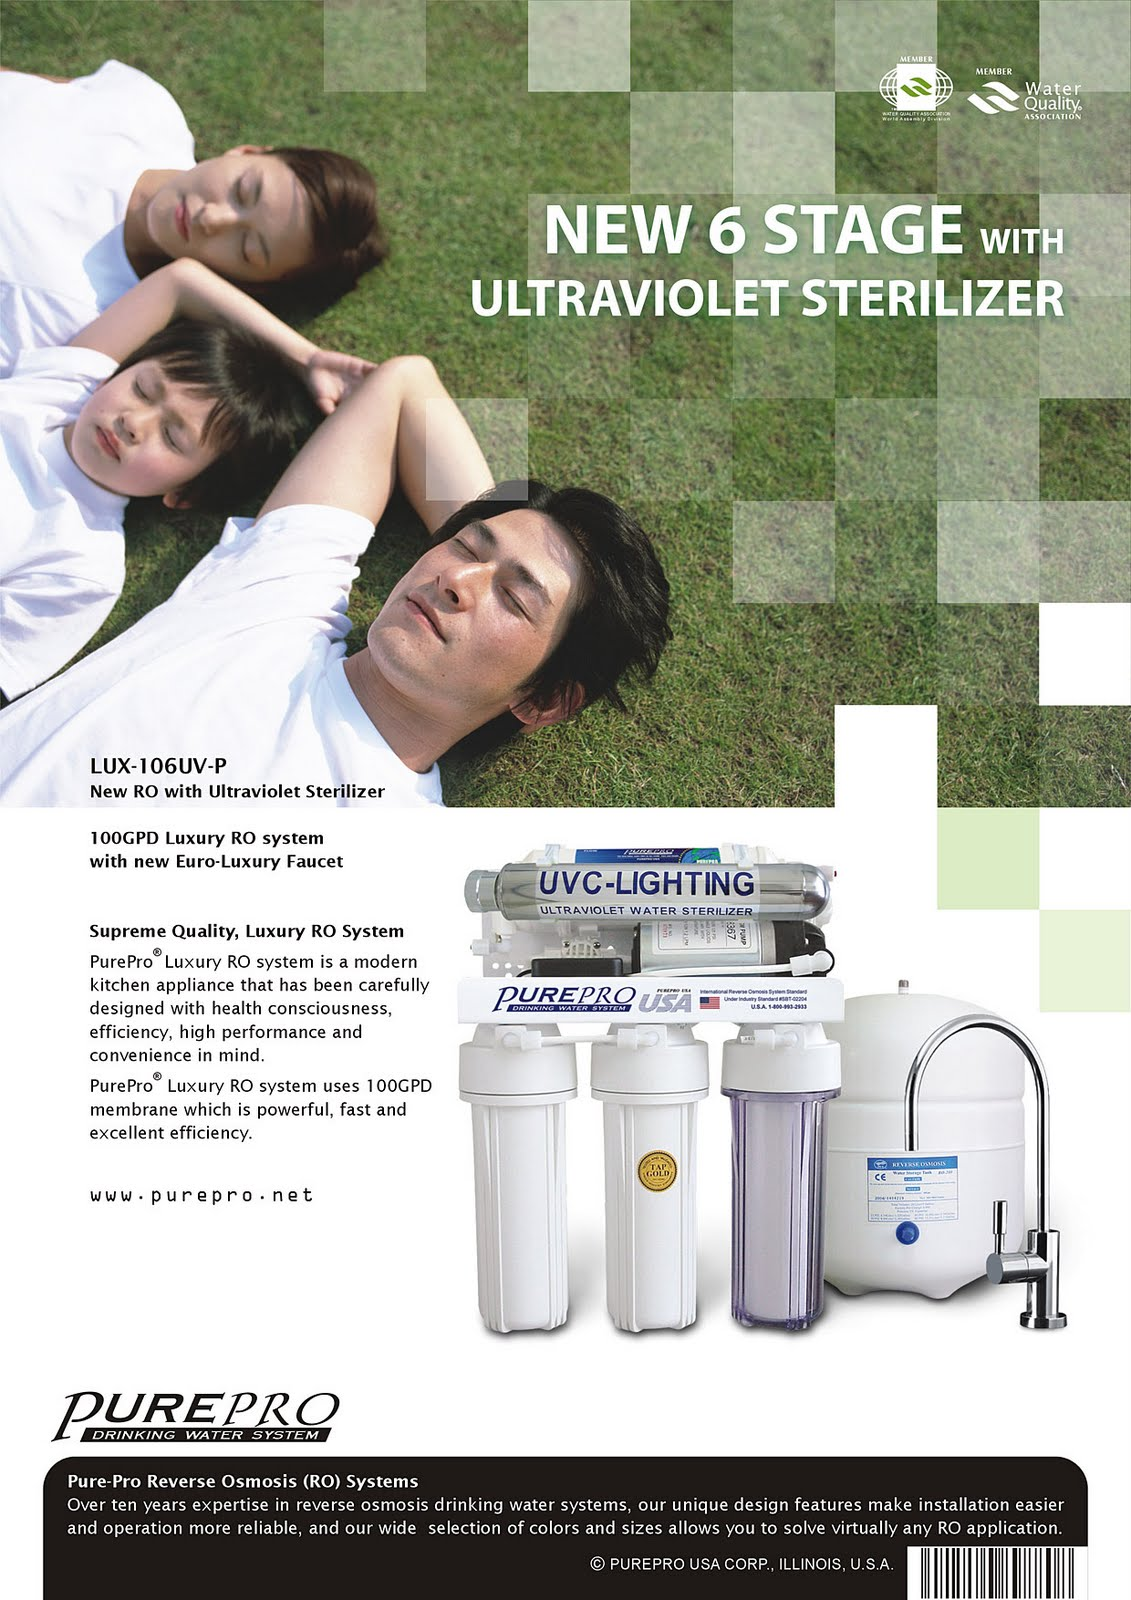 PurePro® LUX-106UV-P Reverse Osmosis Water Filtration System